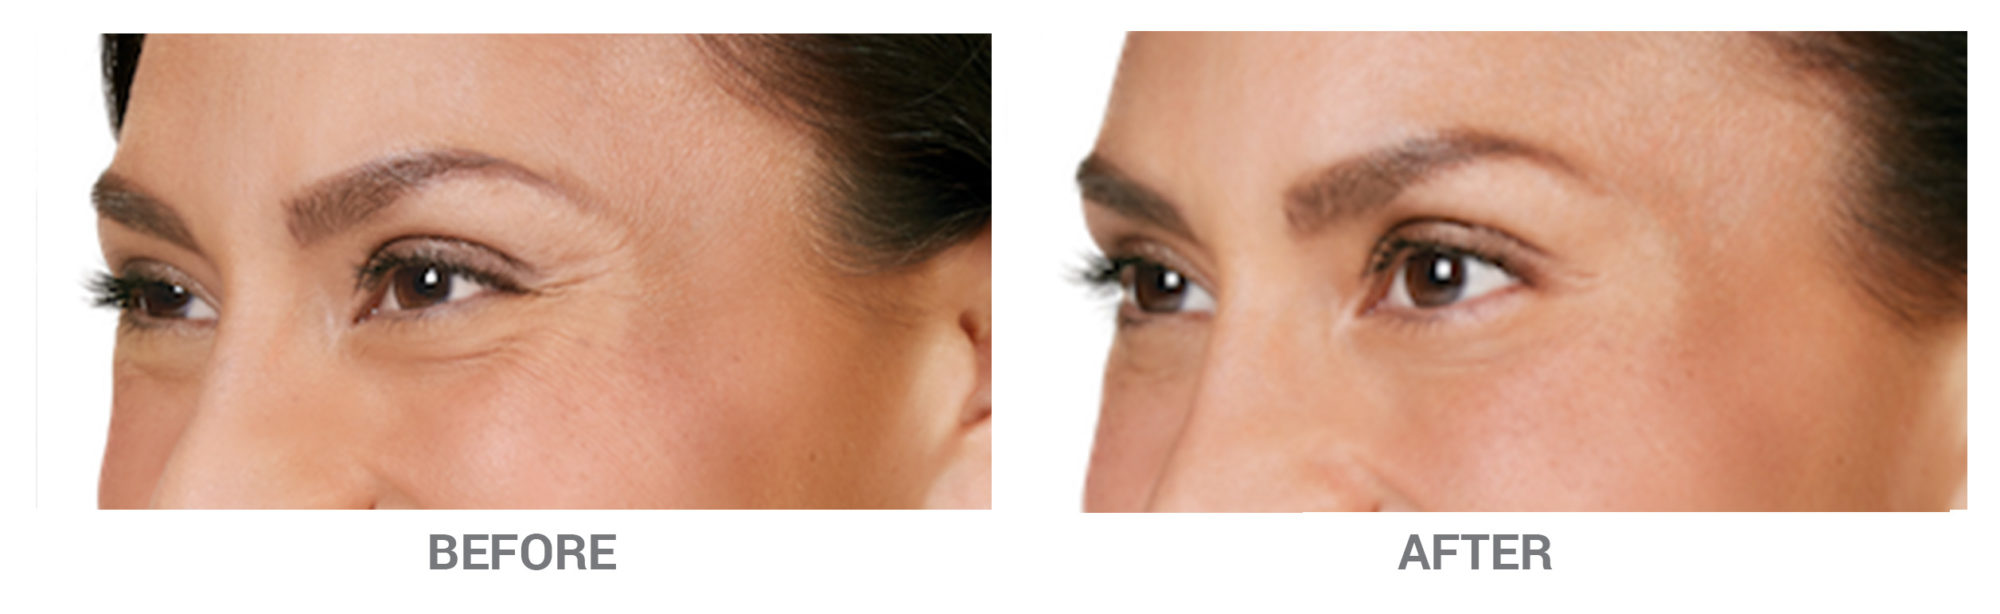 BeforeAfter-Botox2